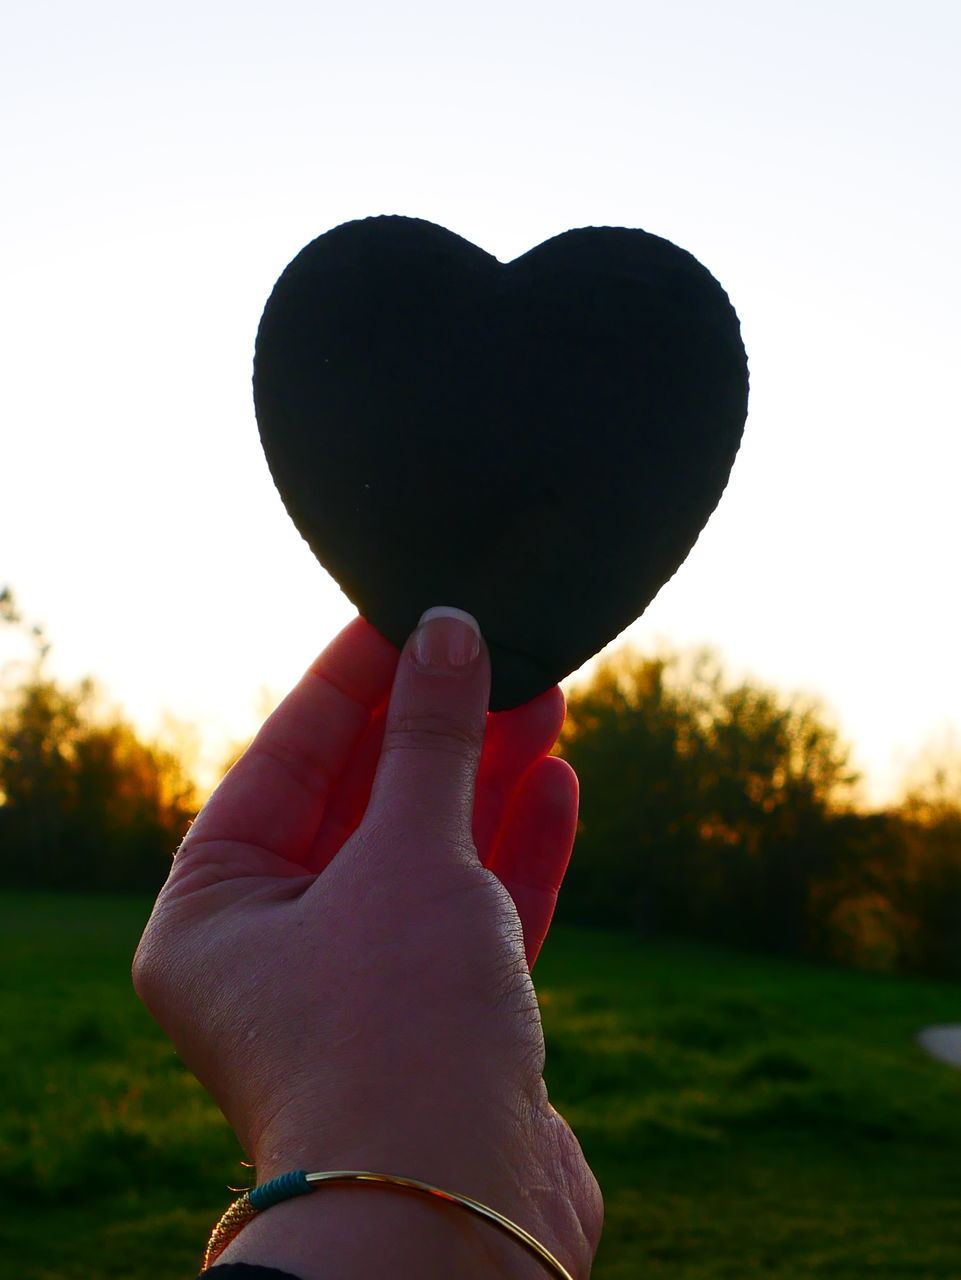 human hand, hand, heart shape, love, real people, one person, human body part, positive emotion, finger, human finger, emotion, sky, nature, holding, sunset, personal perspective, plant, focus on foreground, lifestyles, unrecognizable person, body part, outdoors